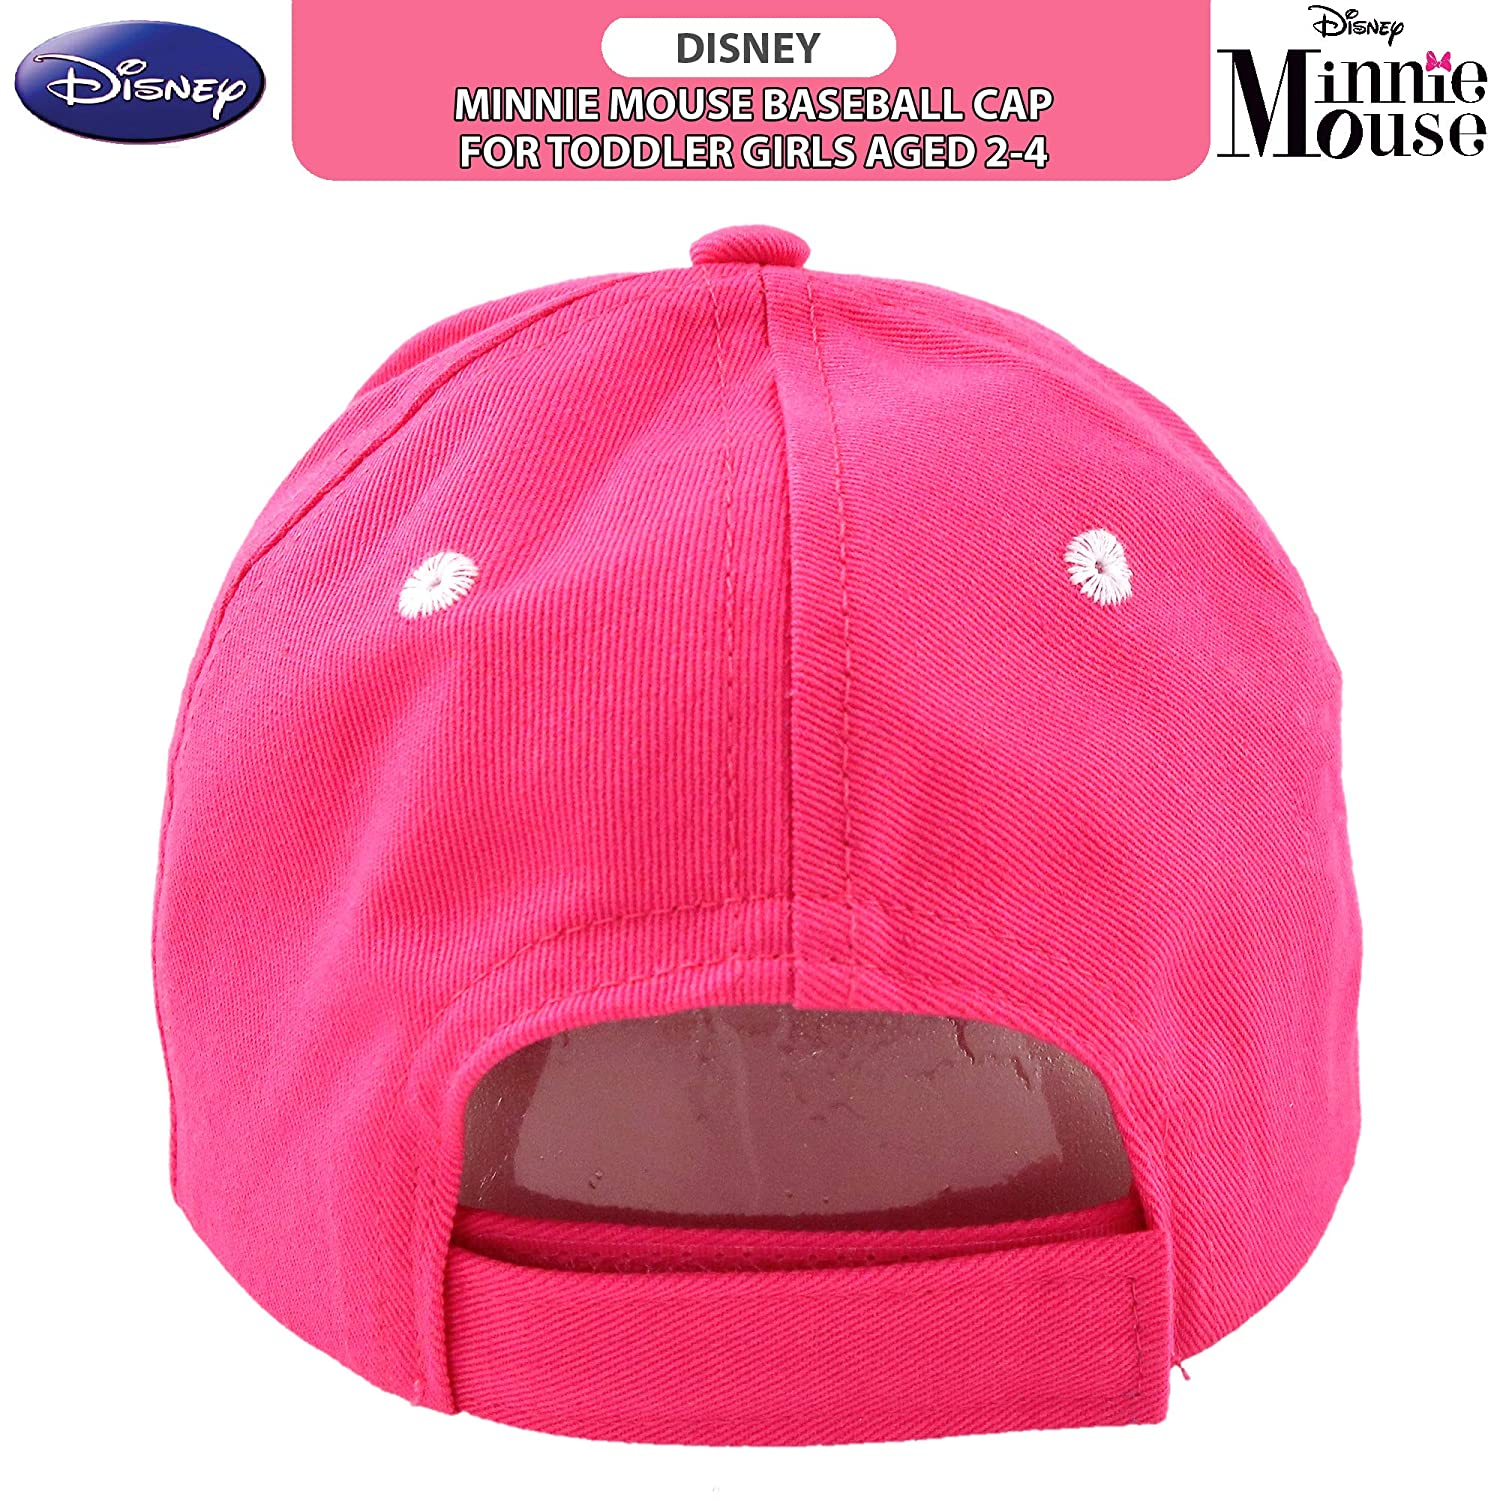 Disney Toddler Girls Minnie Mouse Character Baseball Cap Ages 2-4 Pink//White